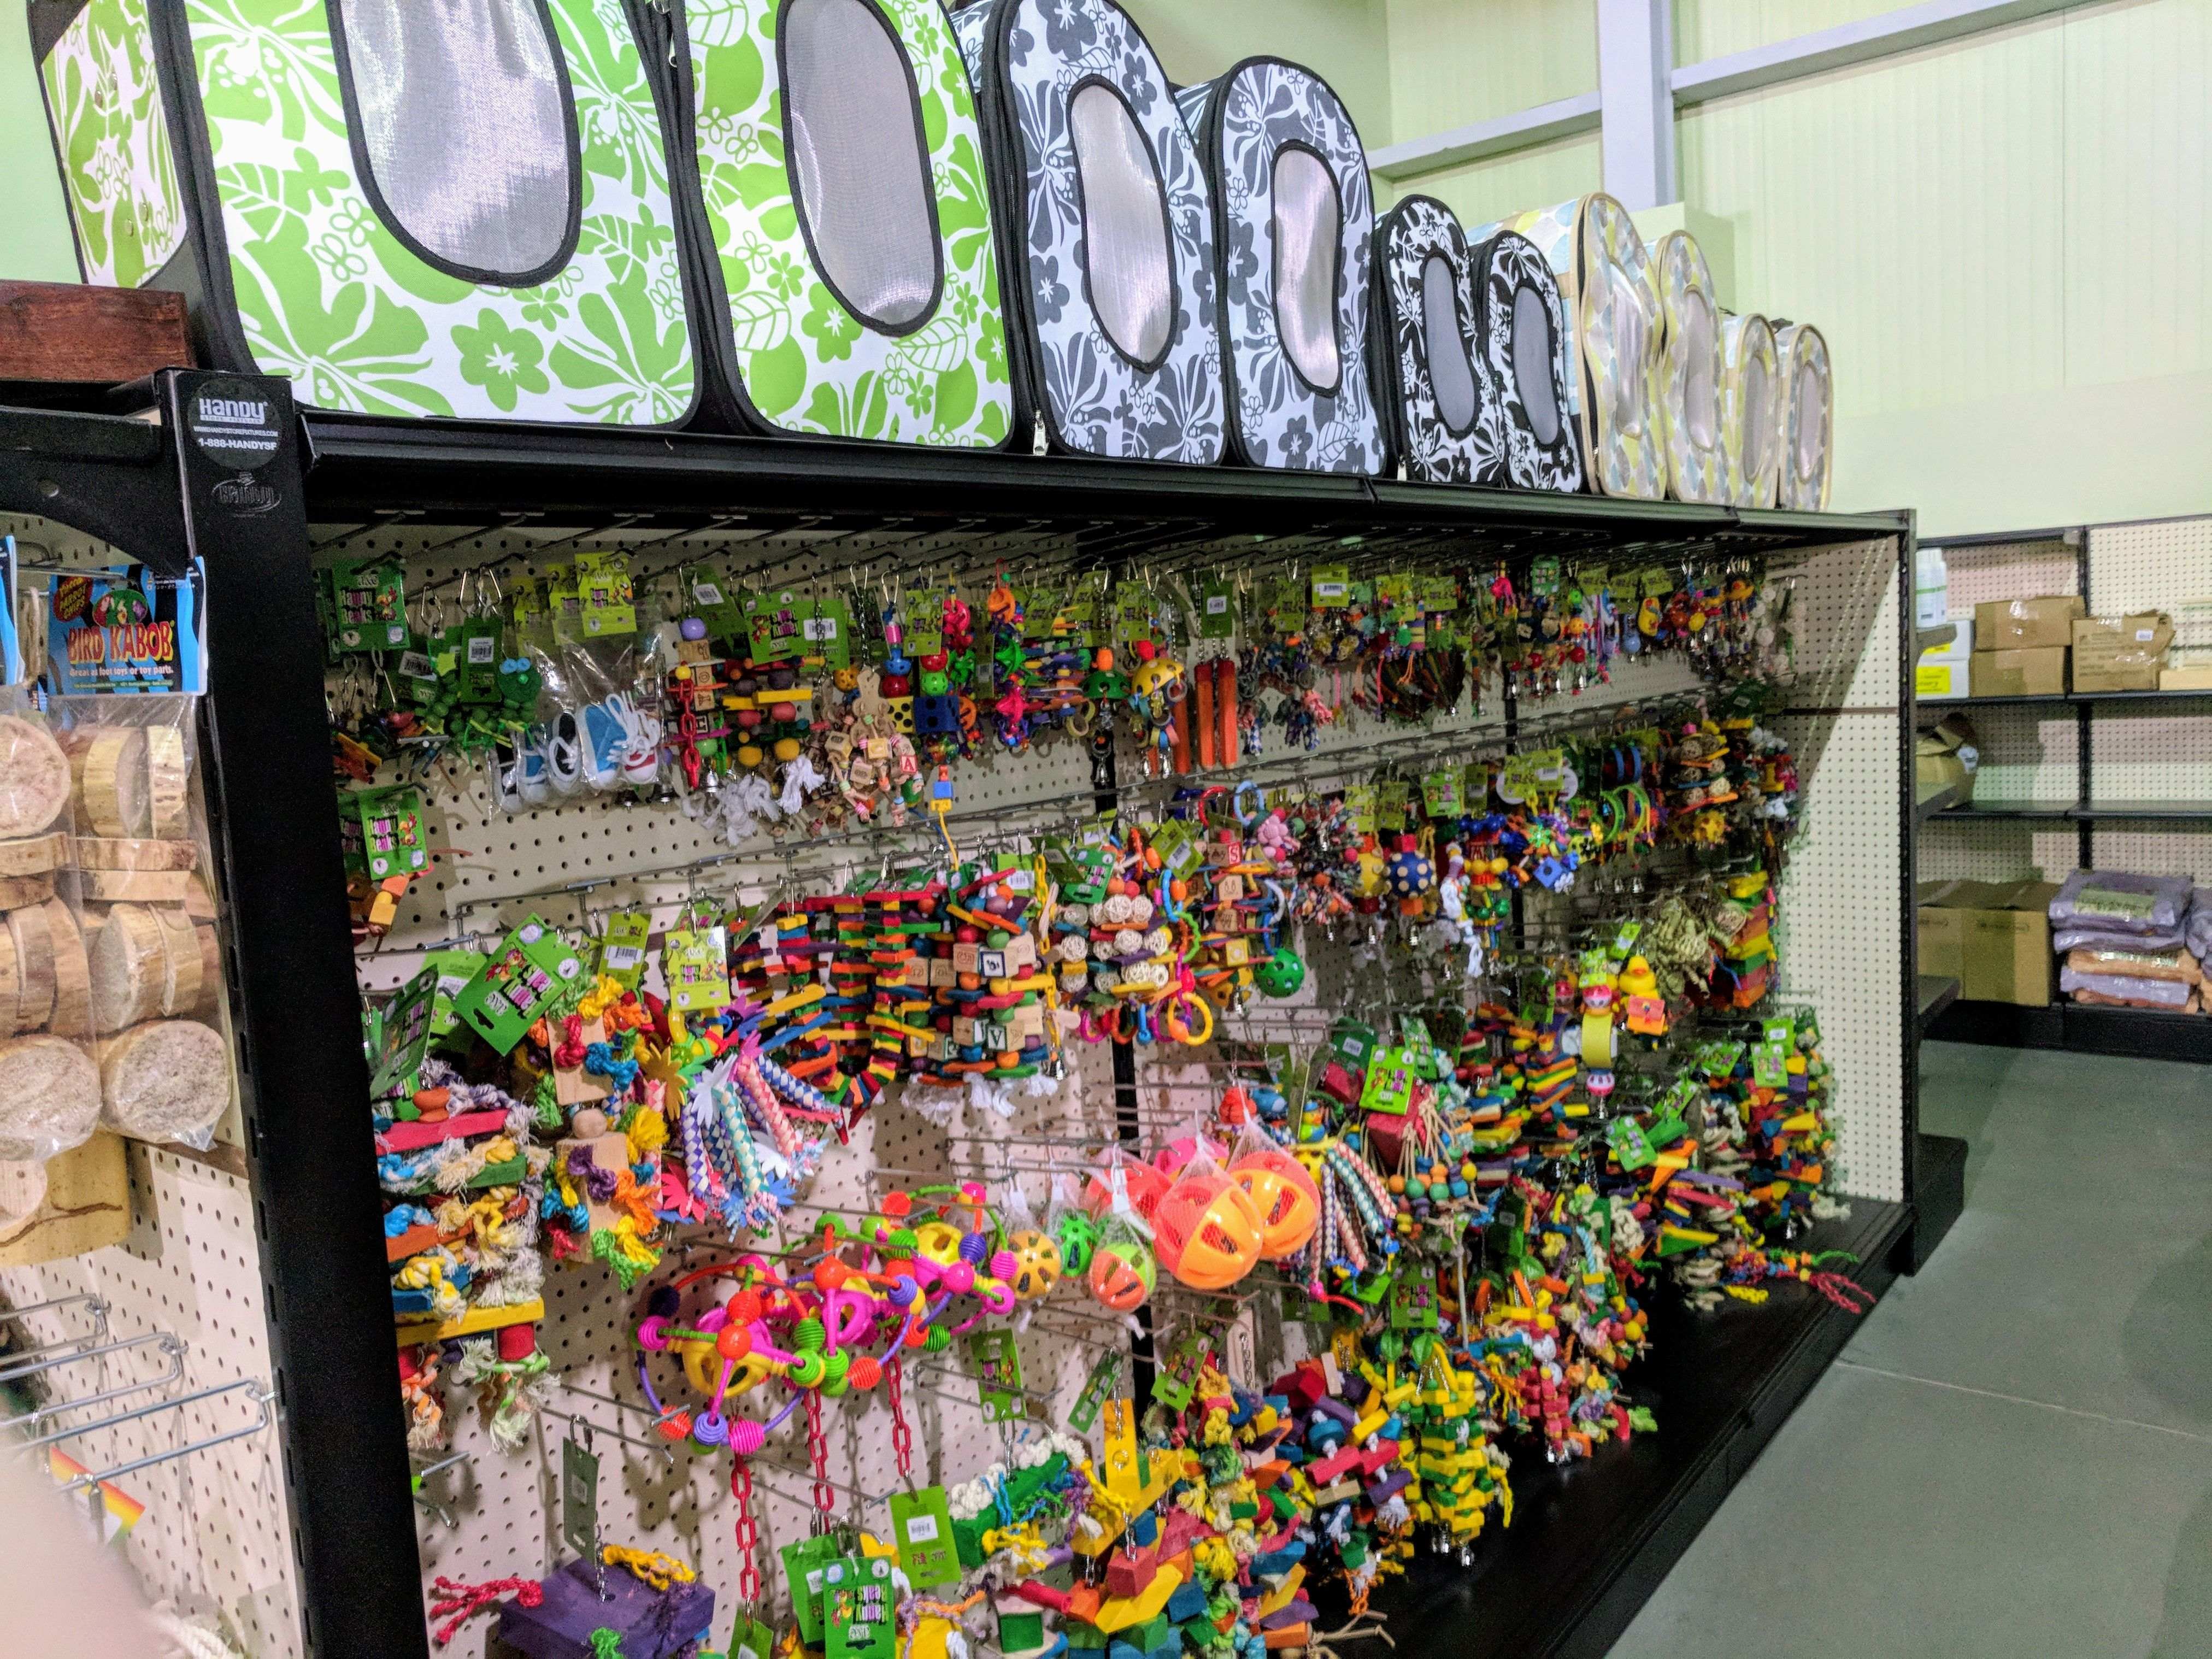 Gondola Shelving Display Efficiently Merchandising Toy Products In